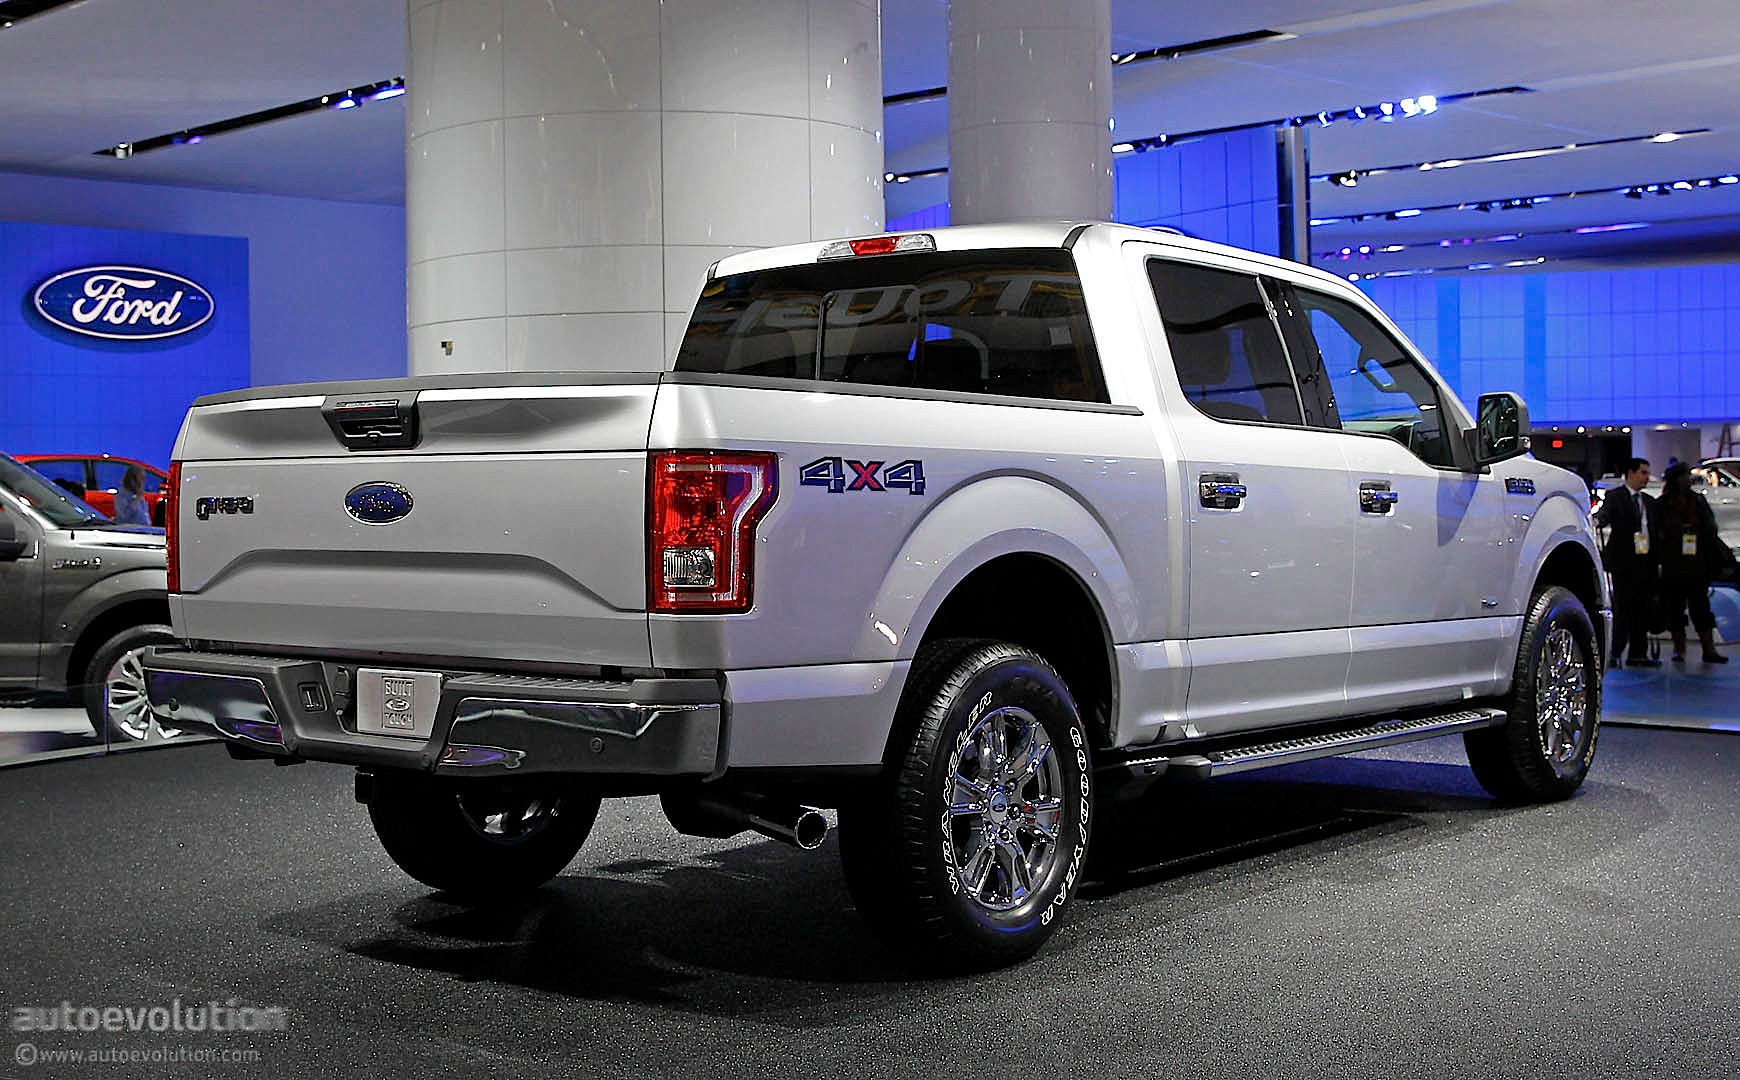 ford s next gen f 150 aluminum truck shows up in detroit live photos autoevolution. Black Bedroom Furniture Sets. Home Design Ideas